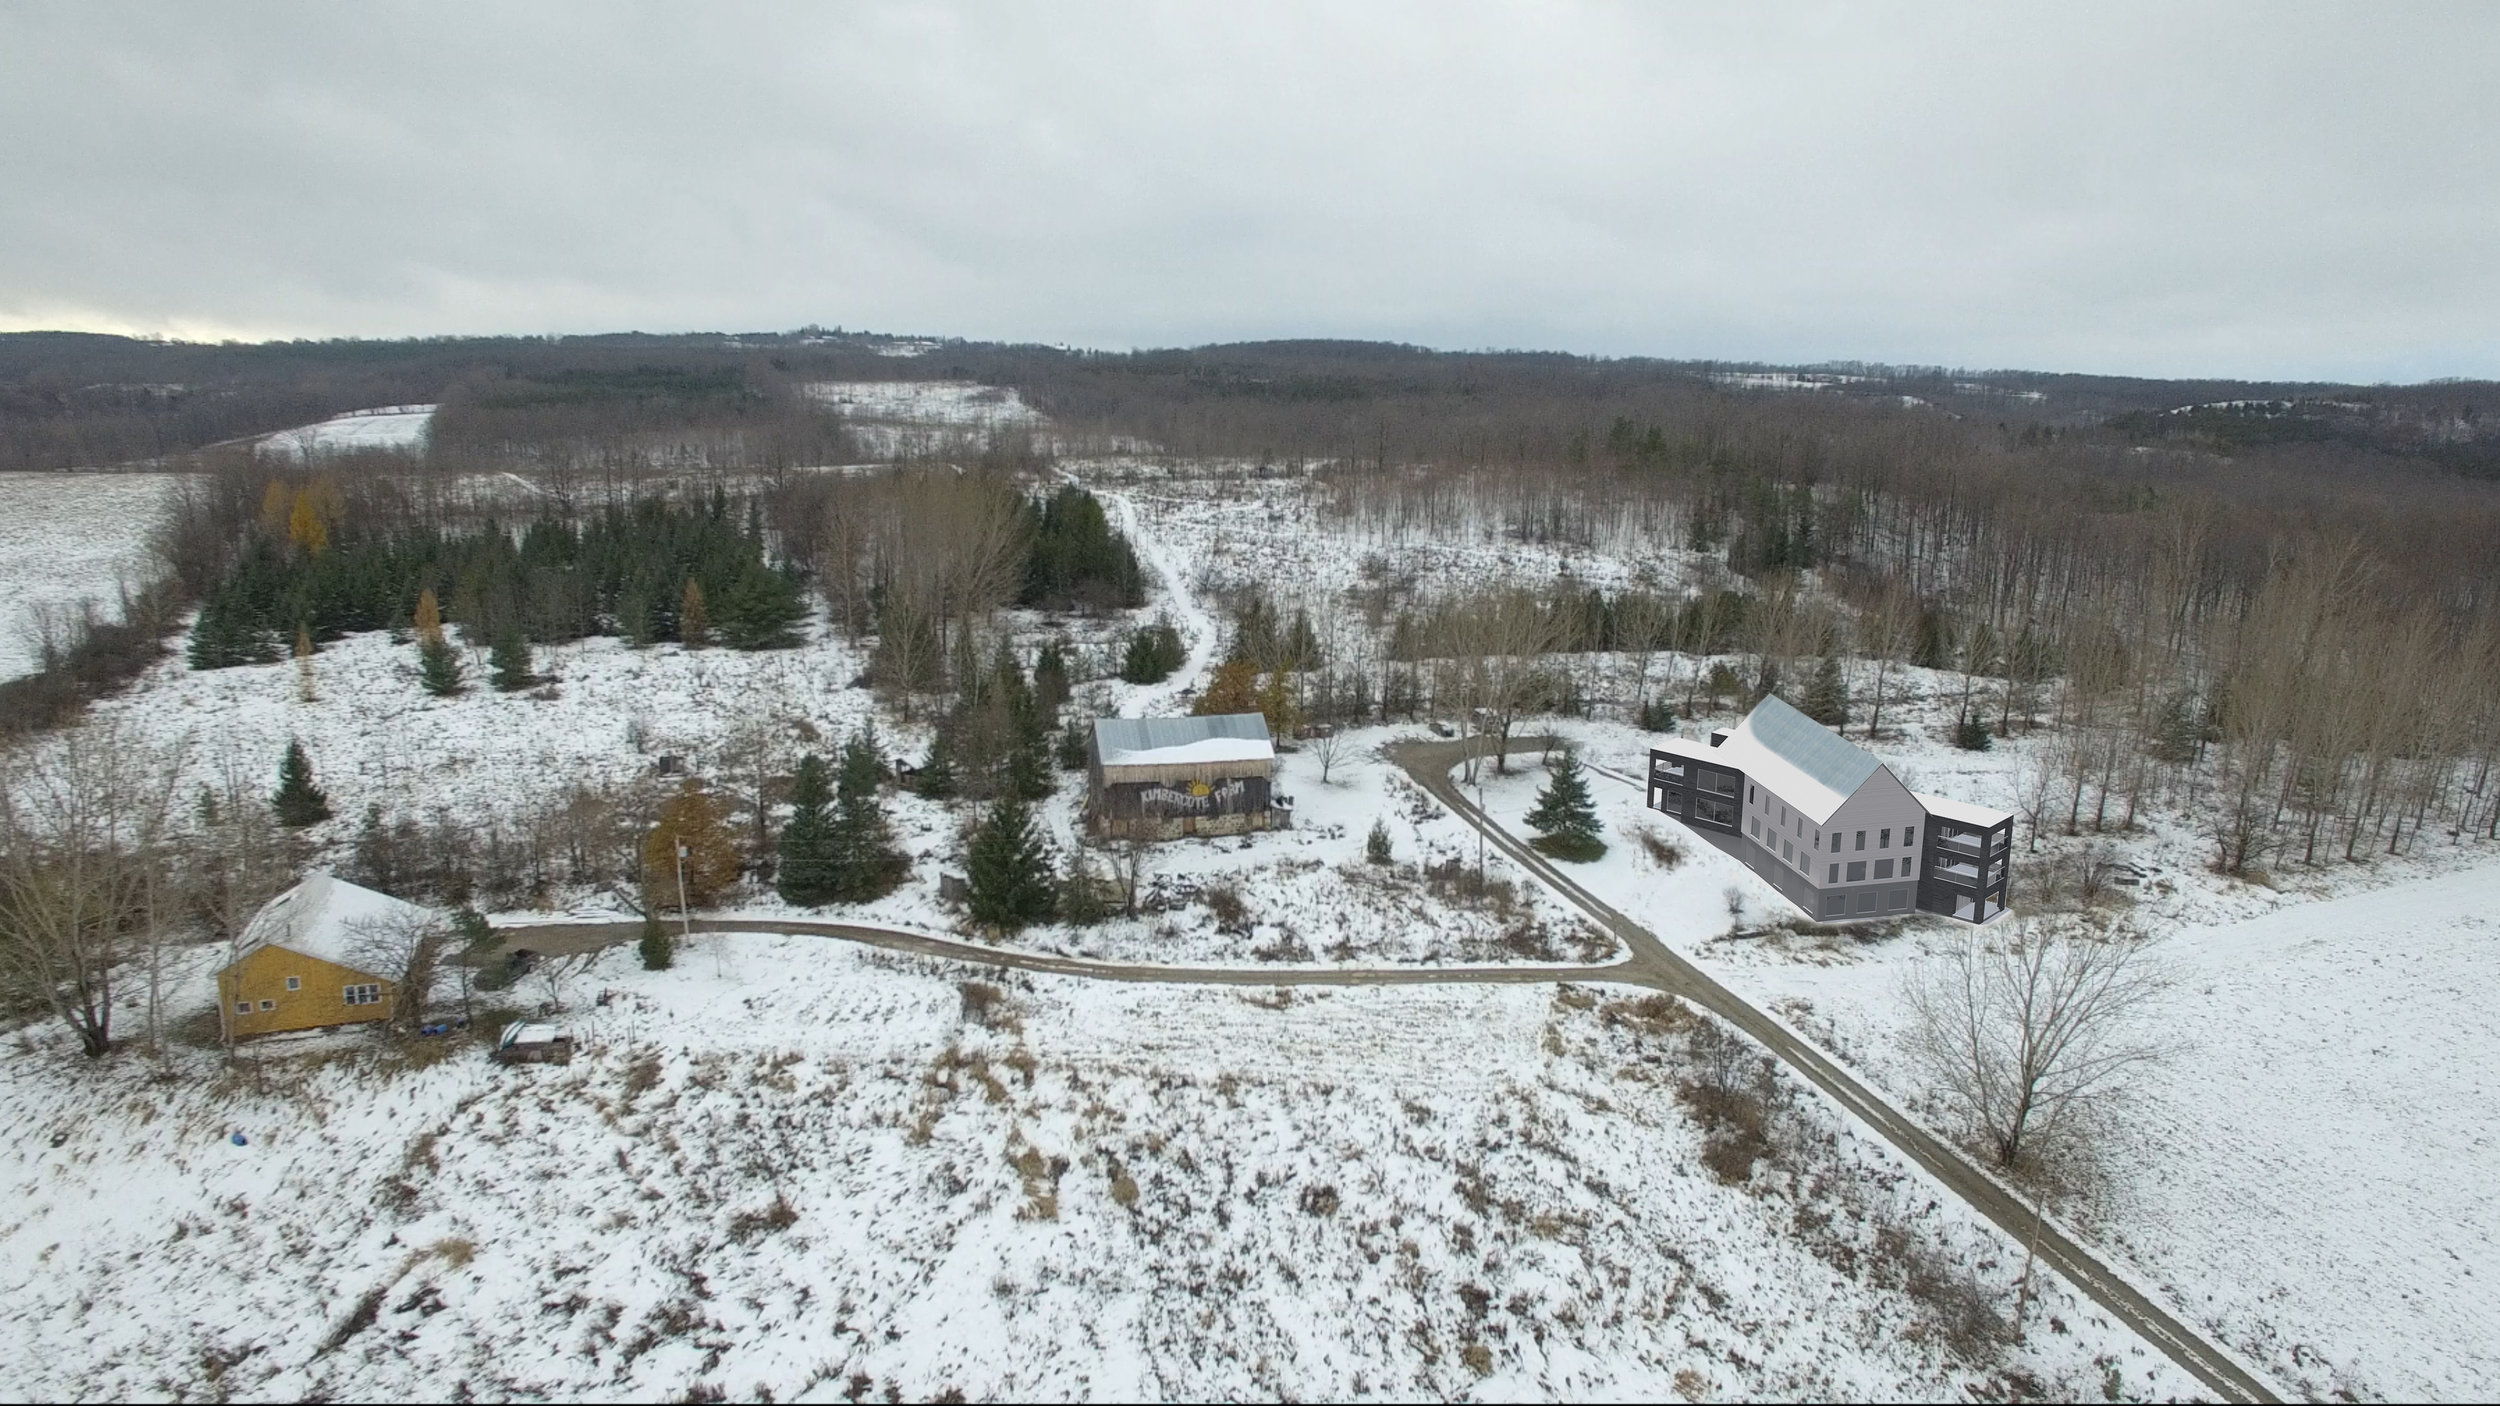 Kimbercote Accommodations Building - Aerial Photograph - 001 - With Existing Barn.jpg